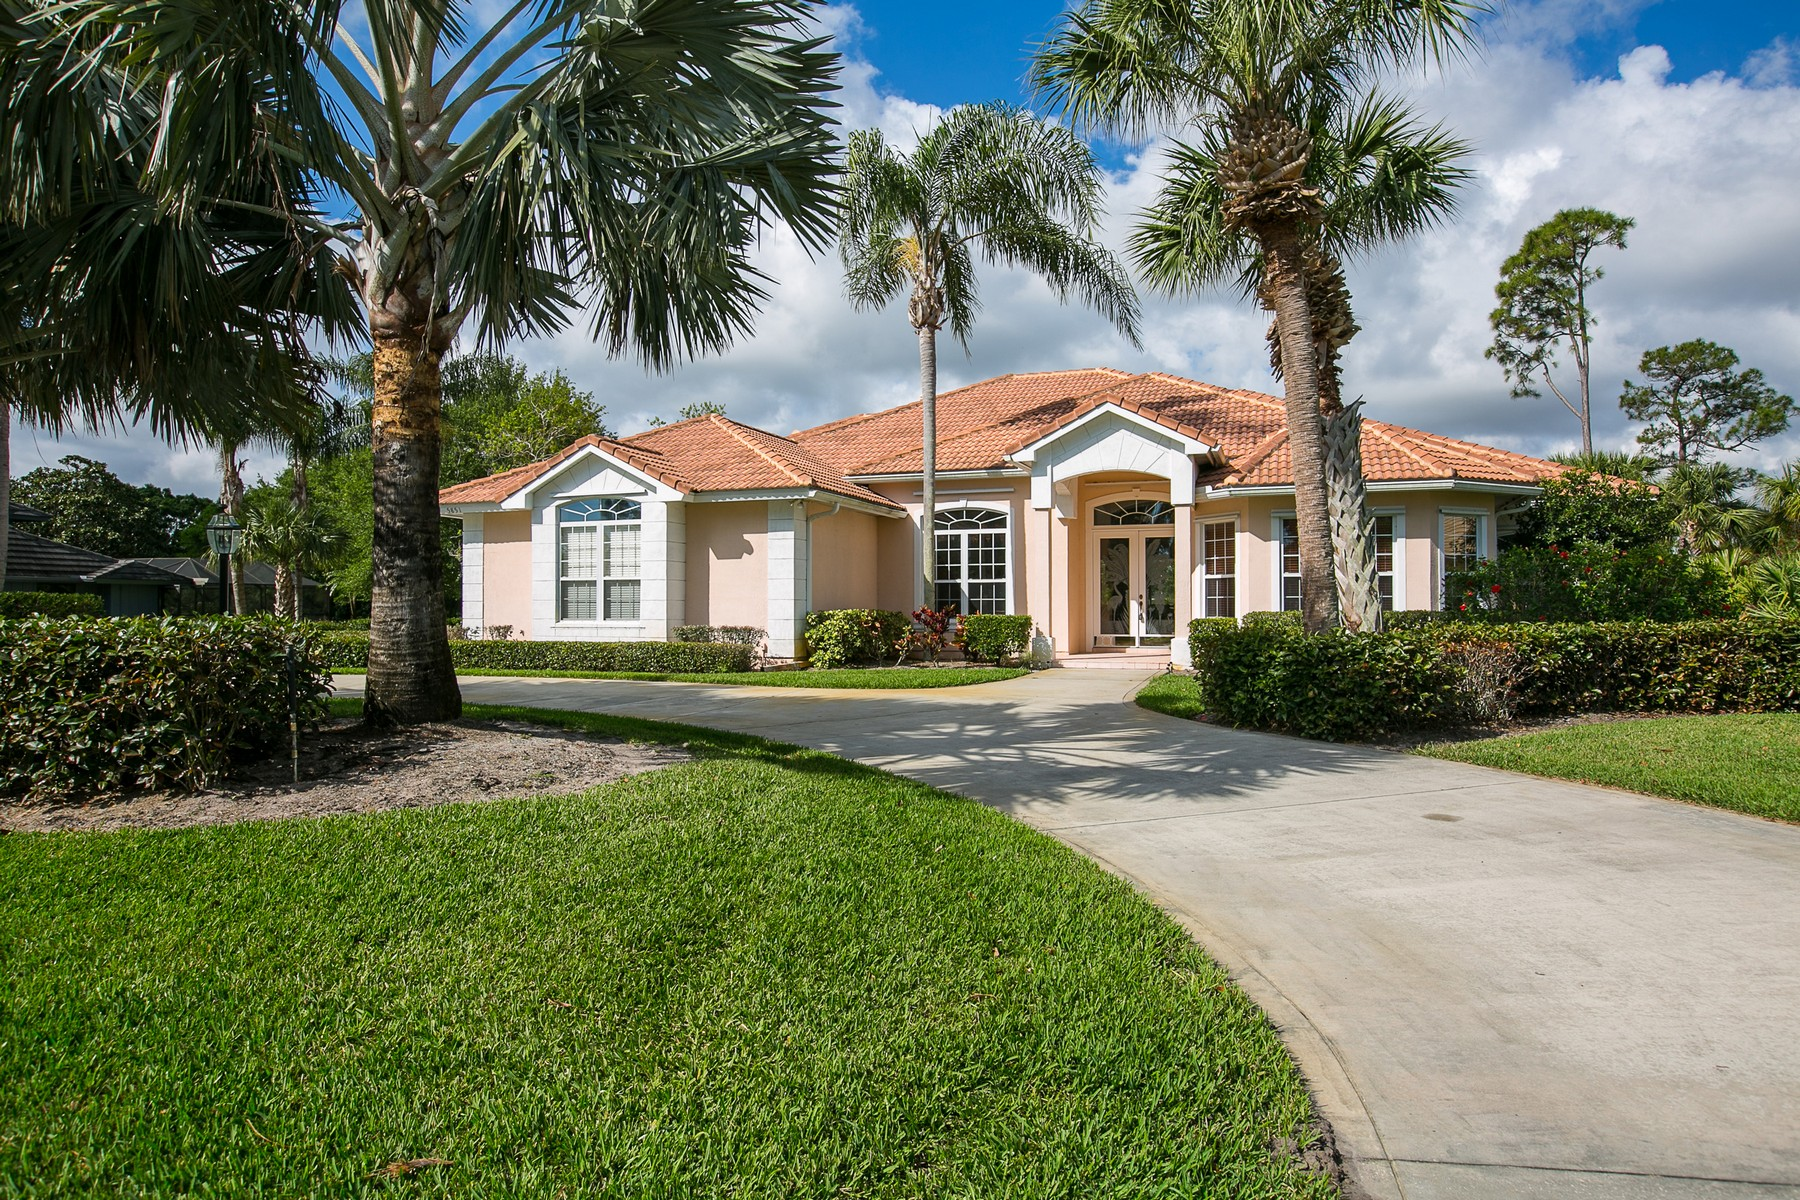 Additional photo for property listing at Fully Furnished Home on Golf Course! 5851 Bent Pine Drive Vero Beach, Florida 32967 United States